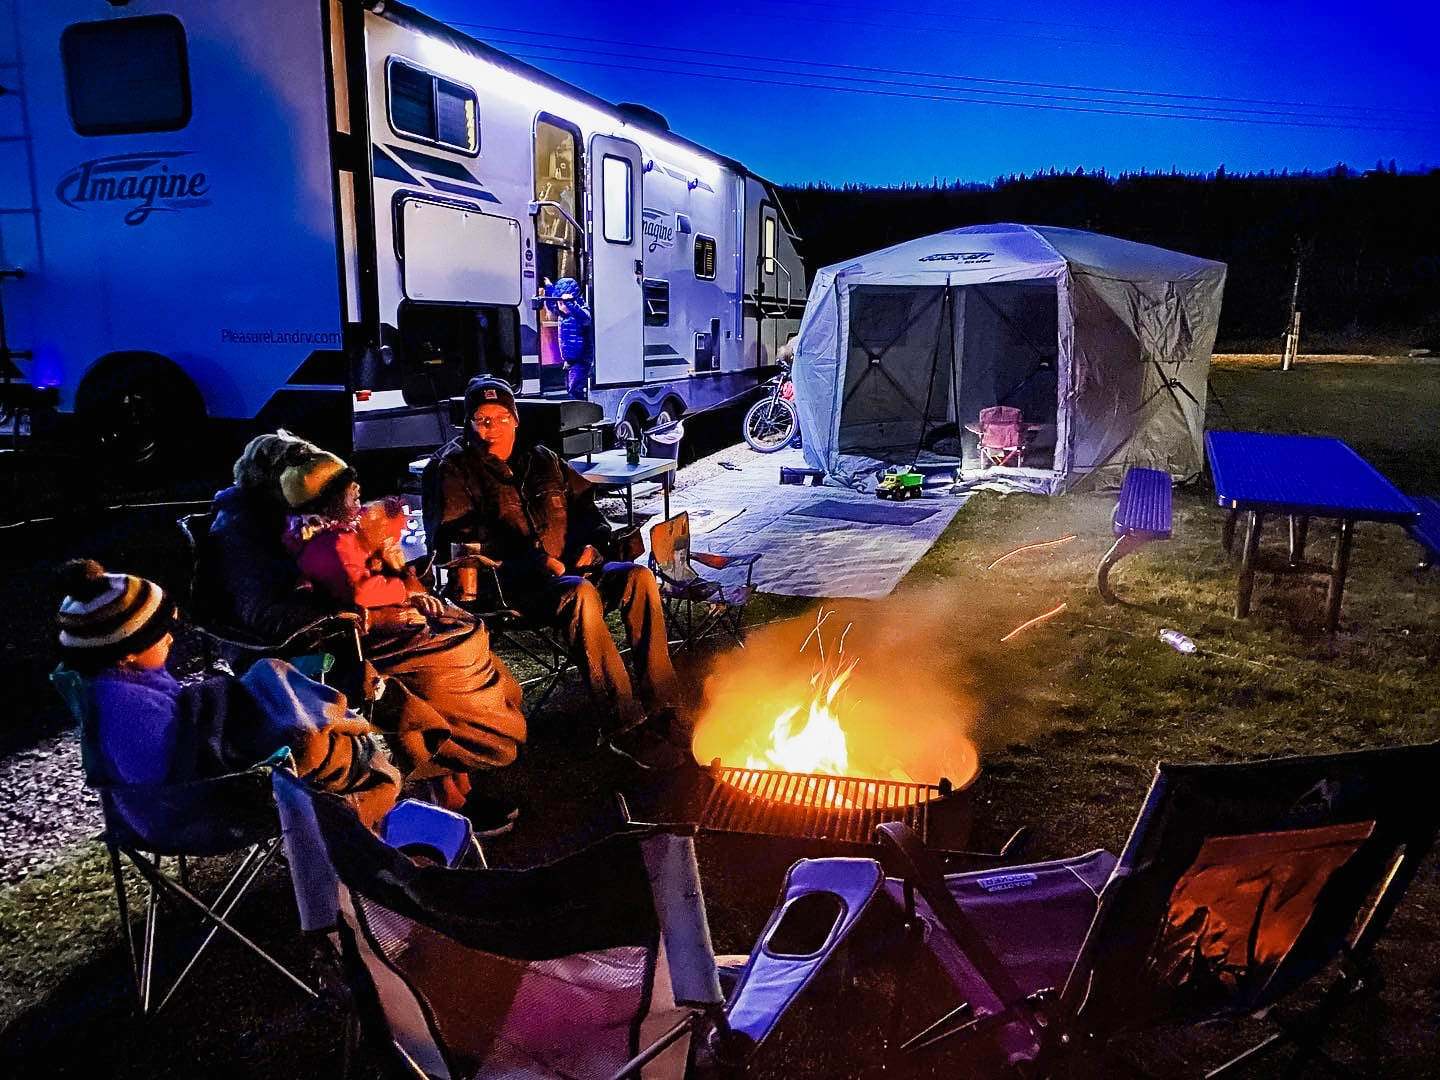 Cozy up around the fire with a little fall camping in MN. The clam shelter can be rented as well.. Grand Design Imagine 3000QB 2019